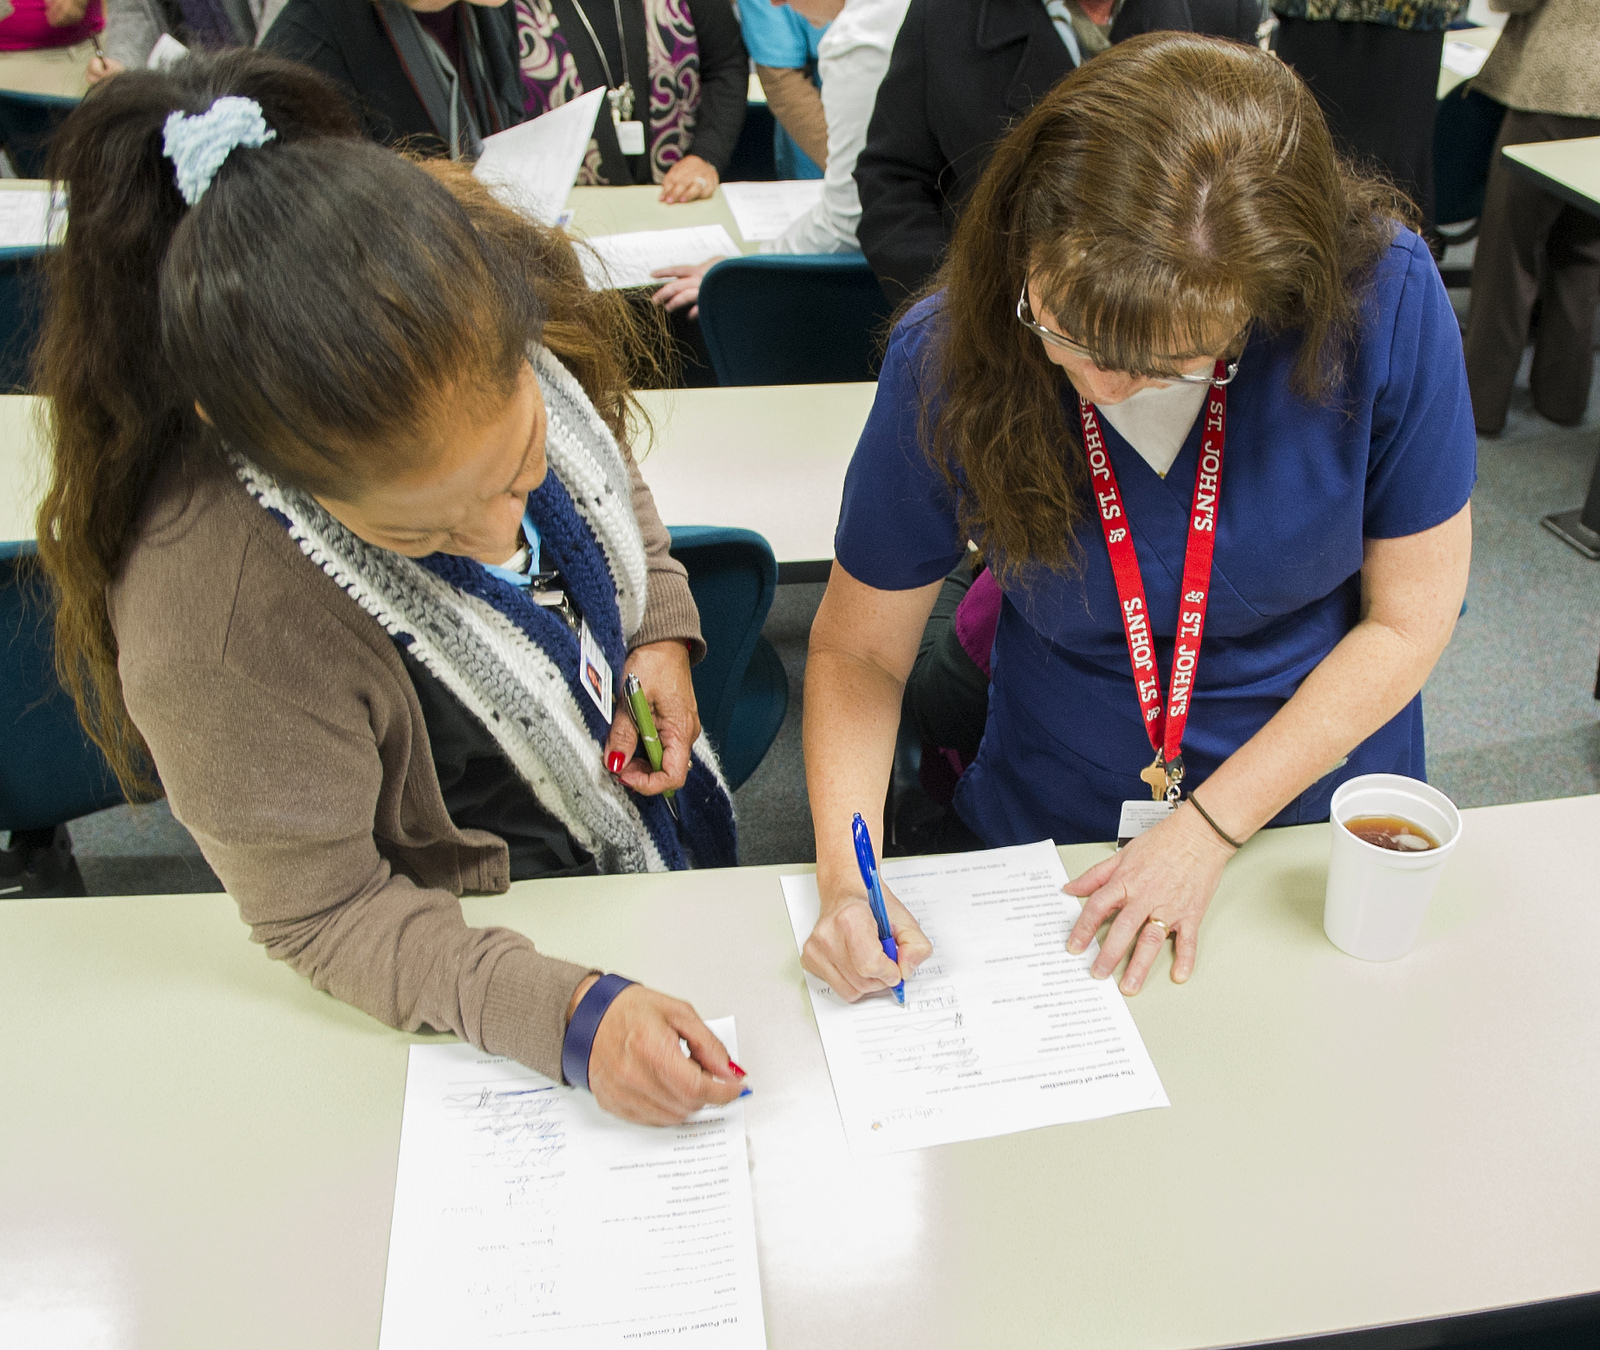 Workshop activities during Staff Development Day in January 2015.